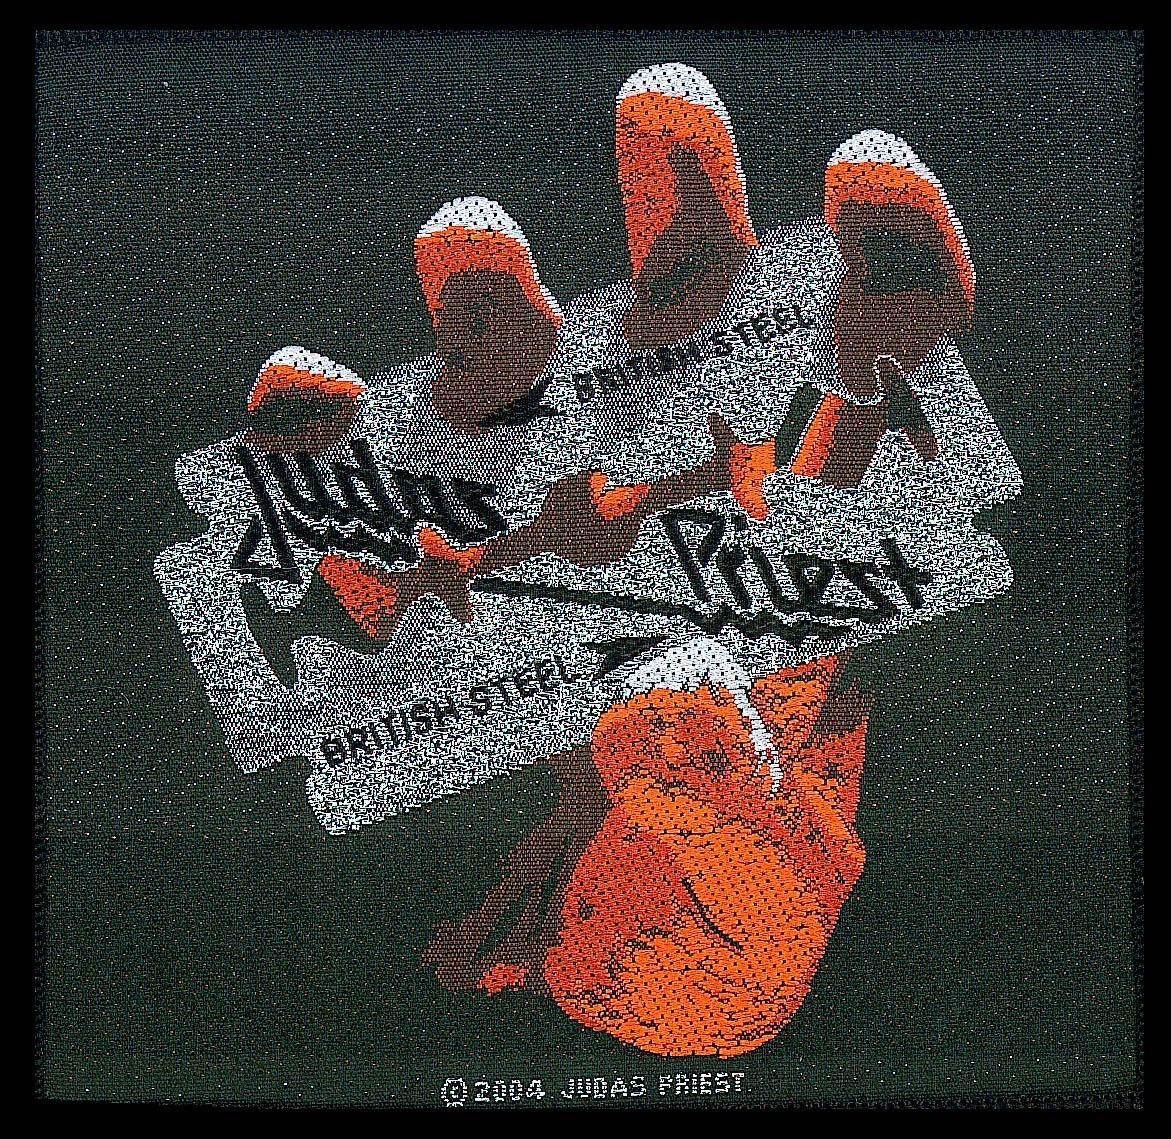 Judas Priest Woven Patch British Steel